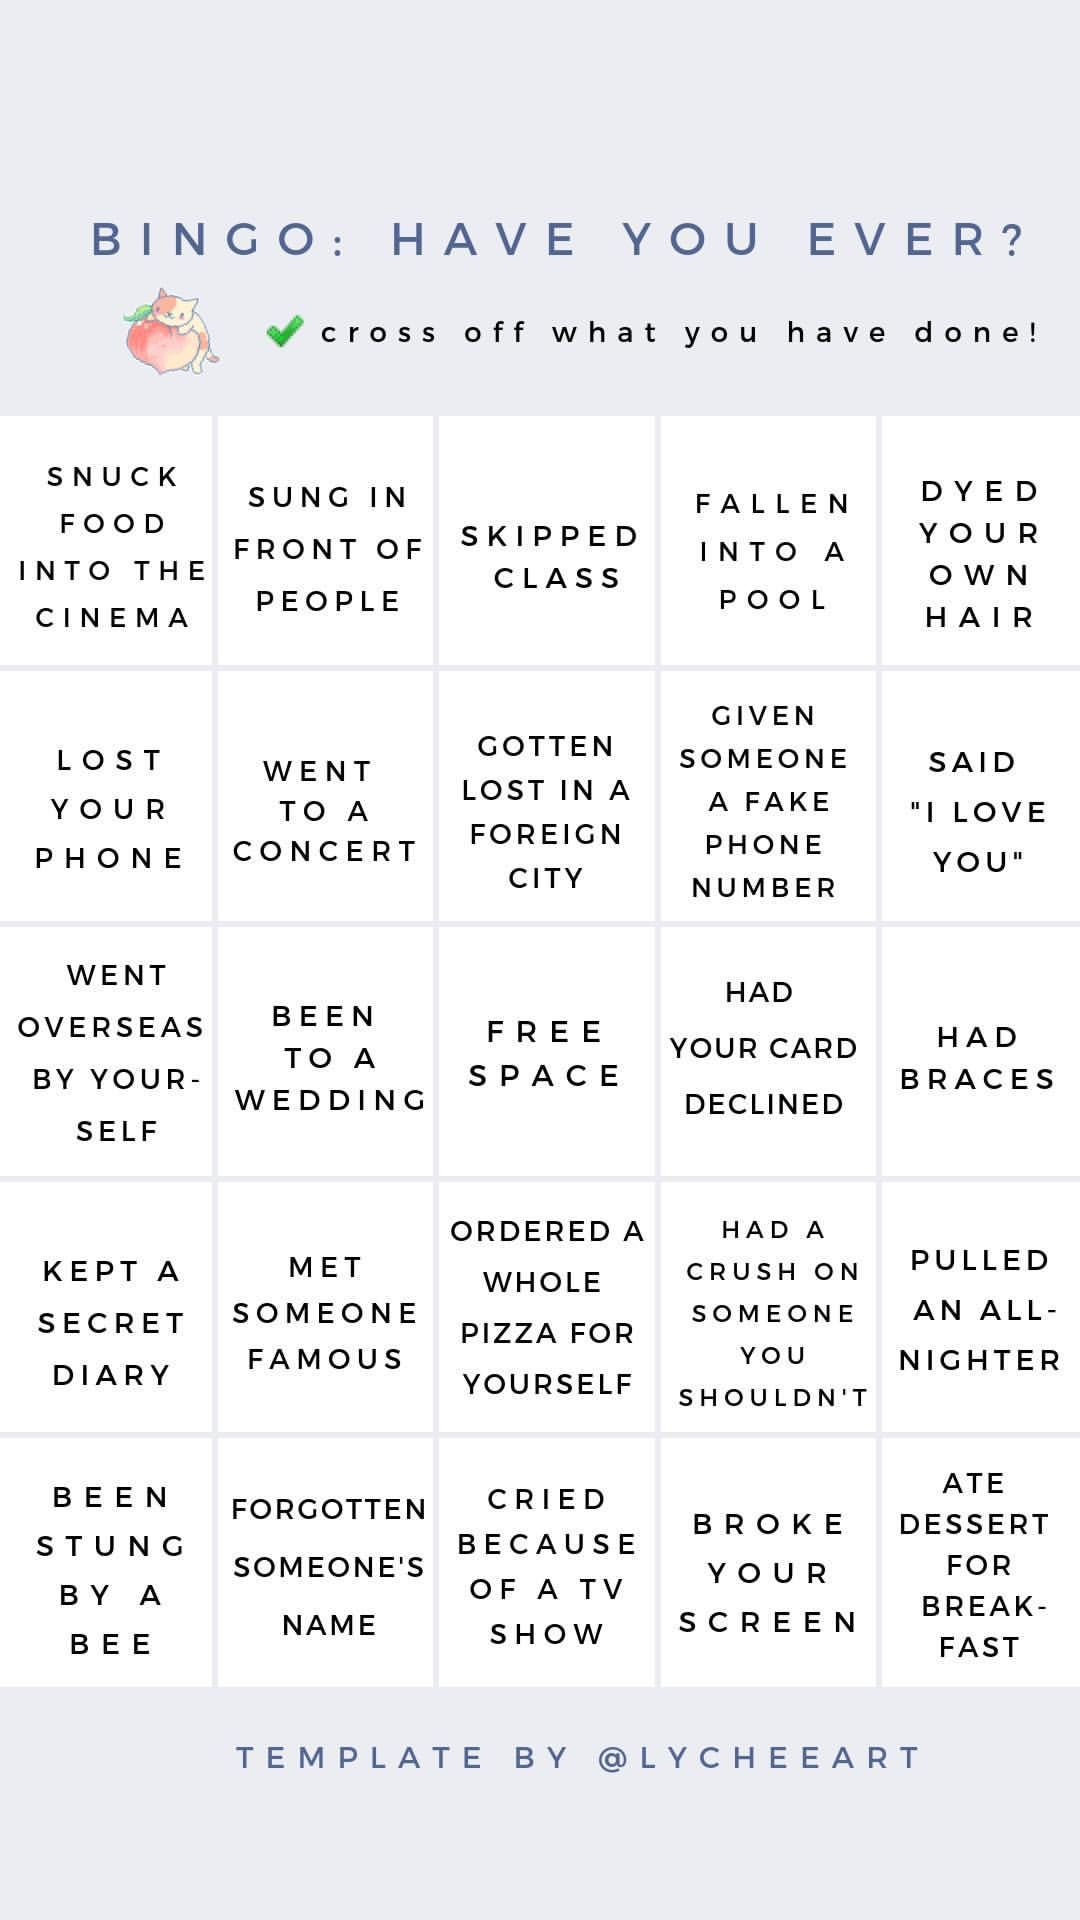 Stories Instagram Instagram Story Questions Bingo Template Snapchat Story Questions